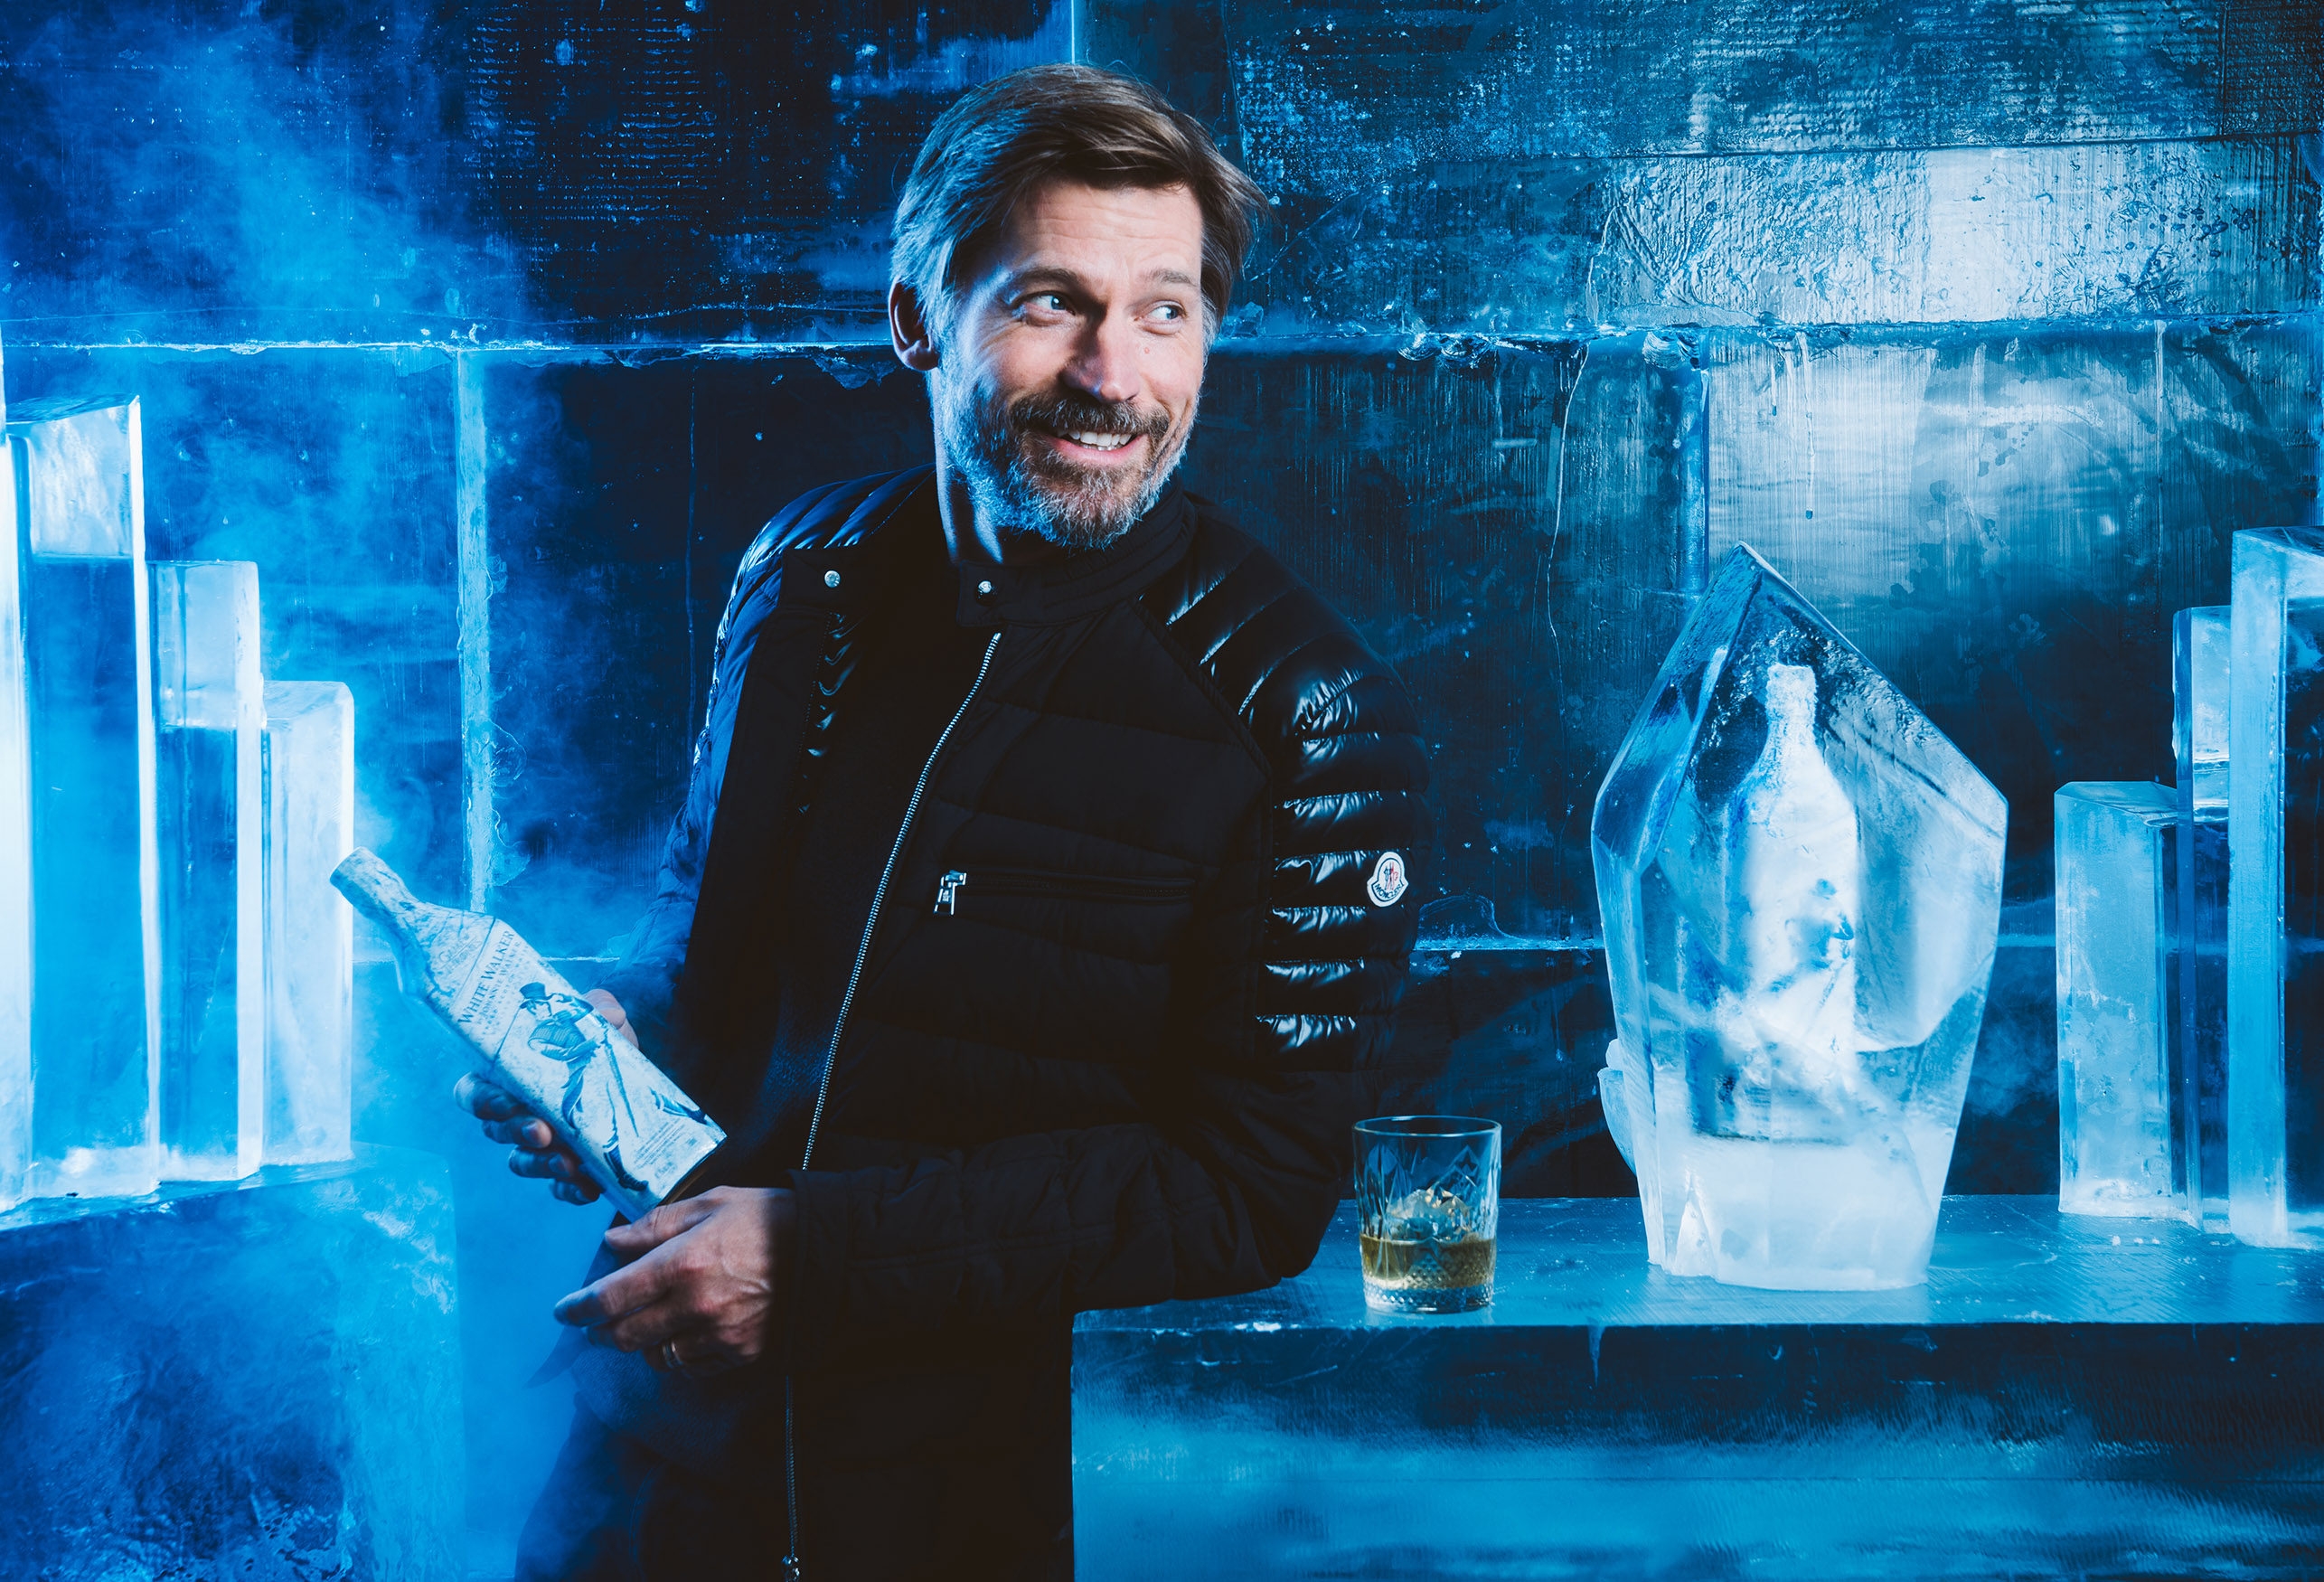 Game of Thrones star Nikolaj Coster Waldau enjoys an exclusive first sip of the new limited edition White Walk 2